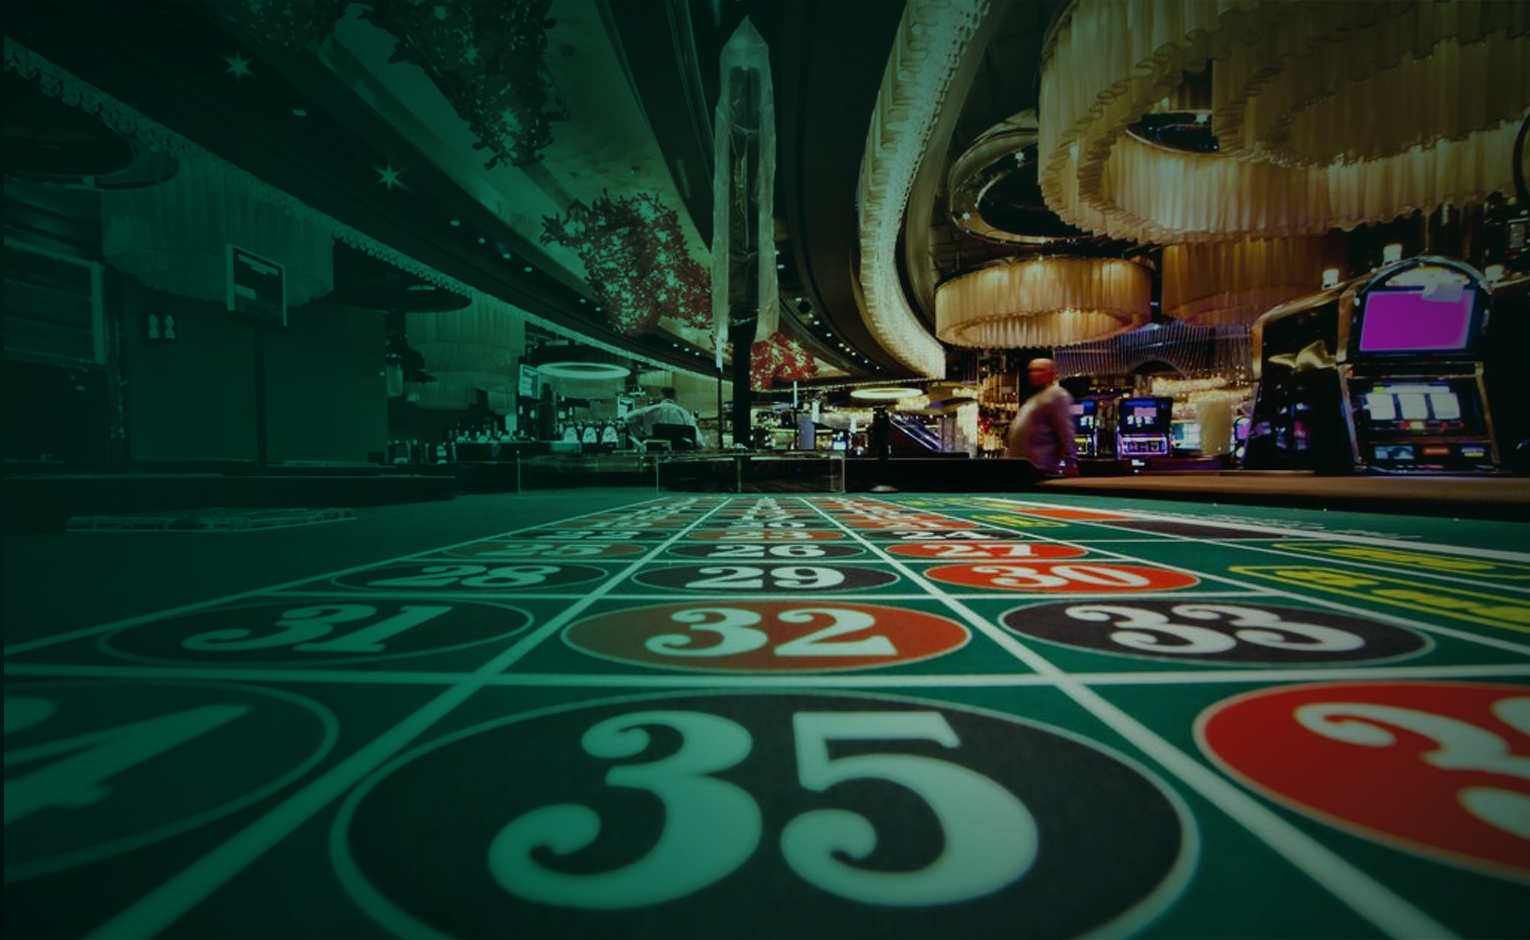 Casinos – I Remember That Casinos Are Omens – Don't Play There